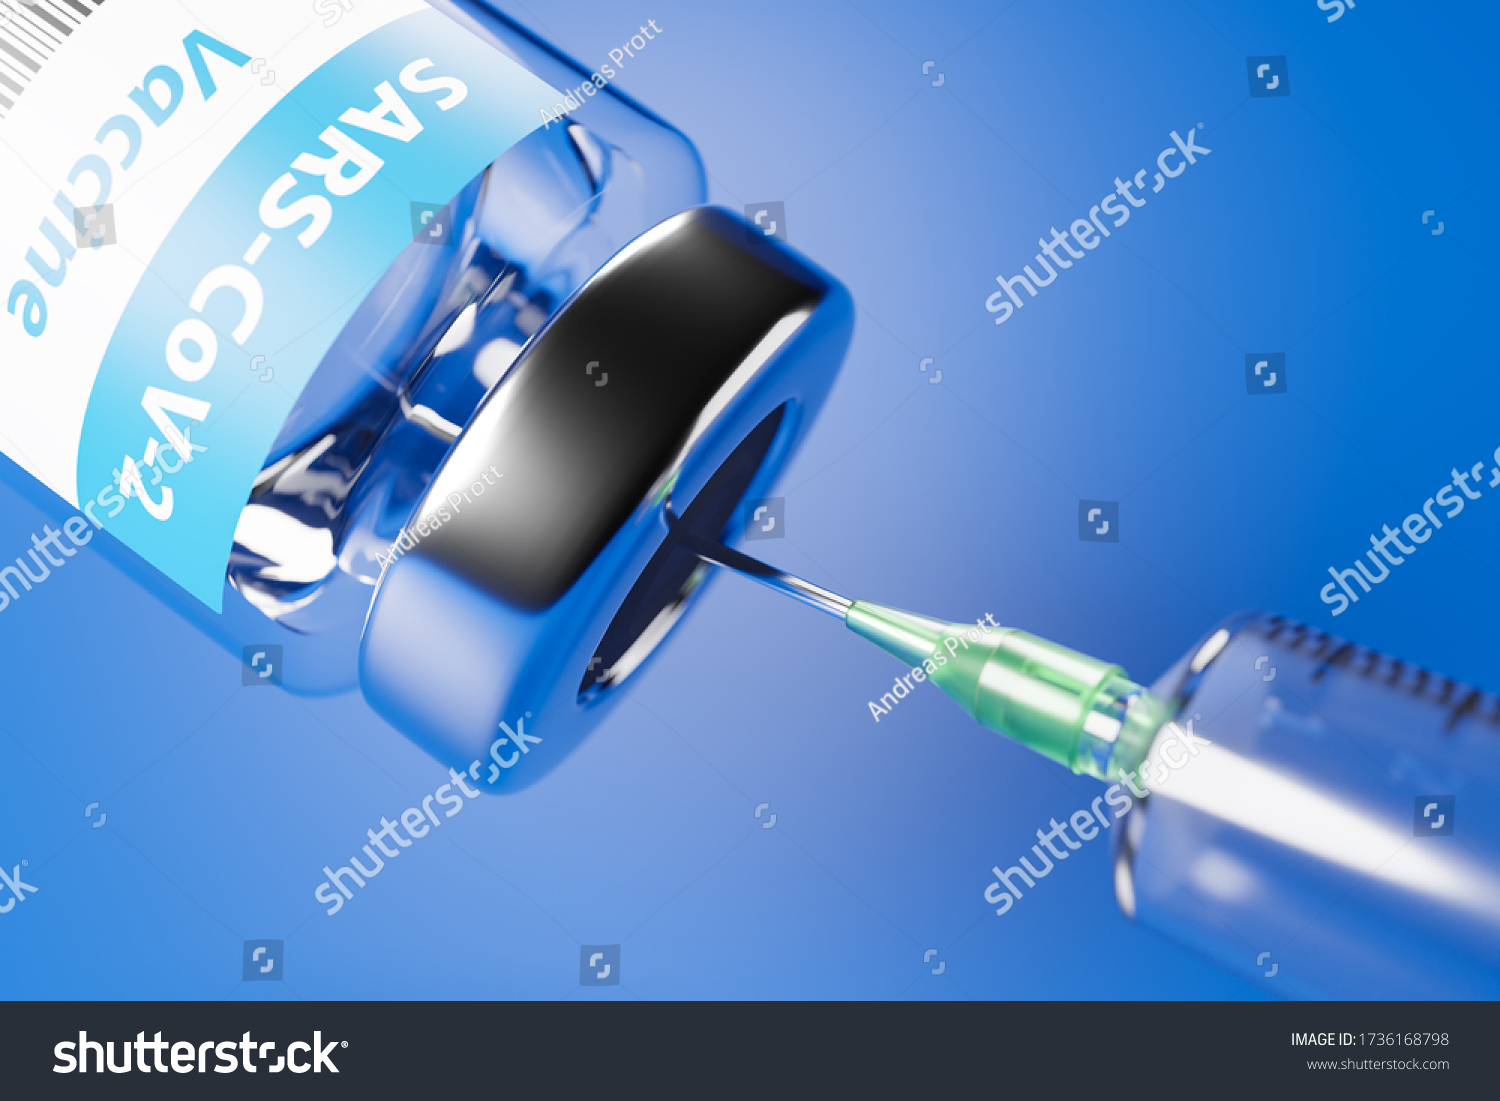 Vaccination against the new Corona Virus SARS-CoV-2: A syringe being drawn up with SARS-CoV-2 vaccination. #1736168798